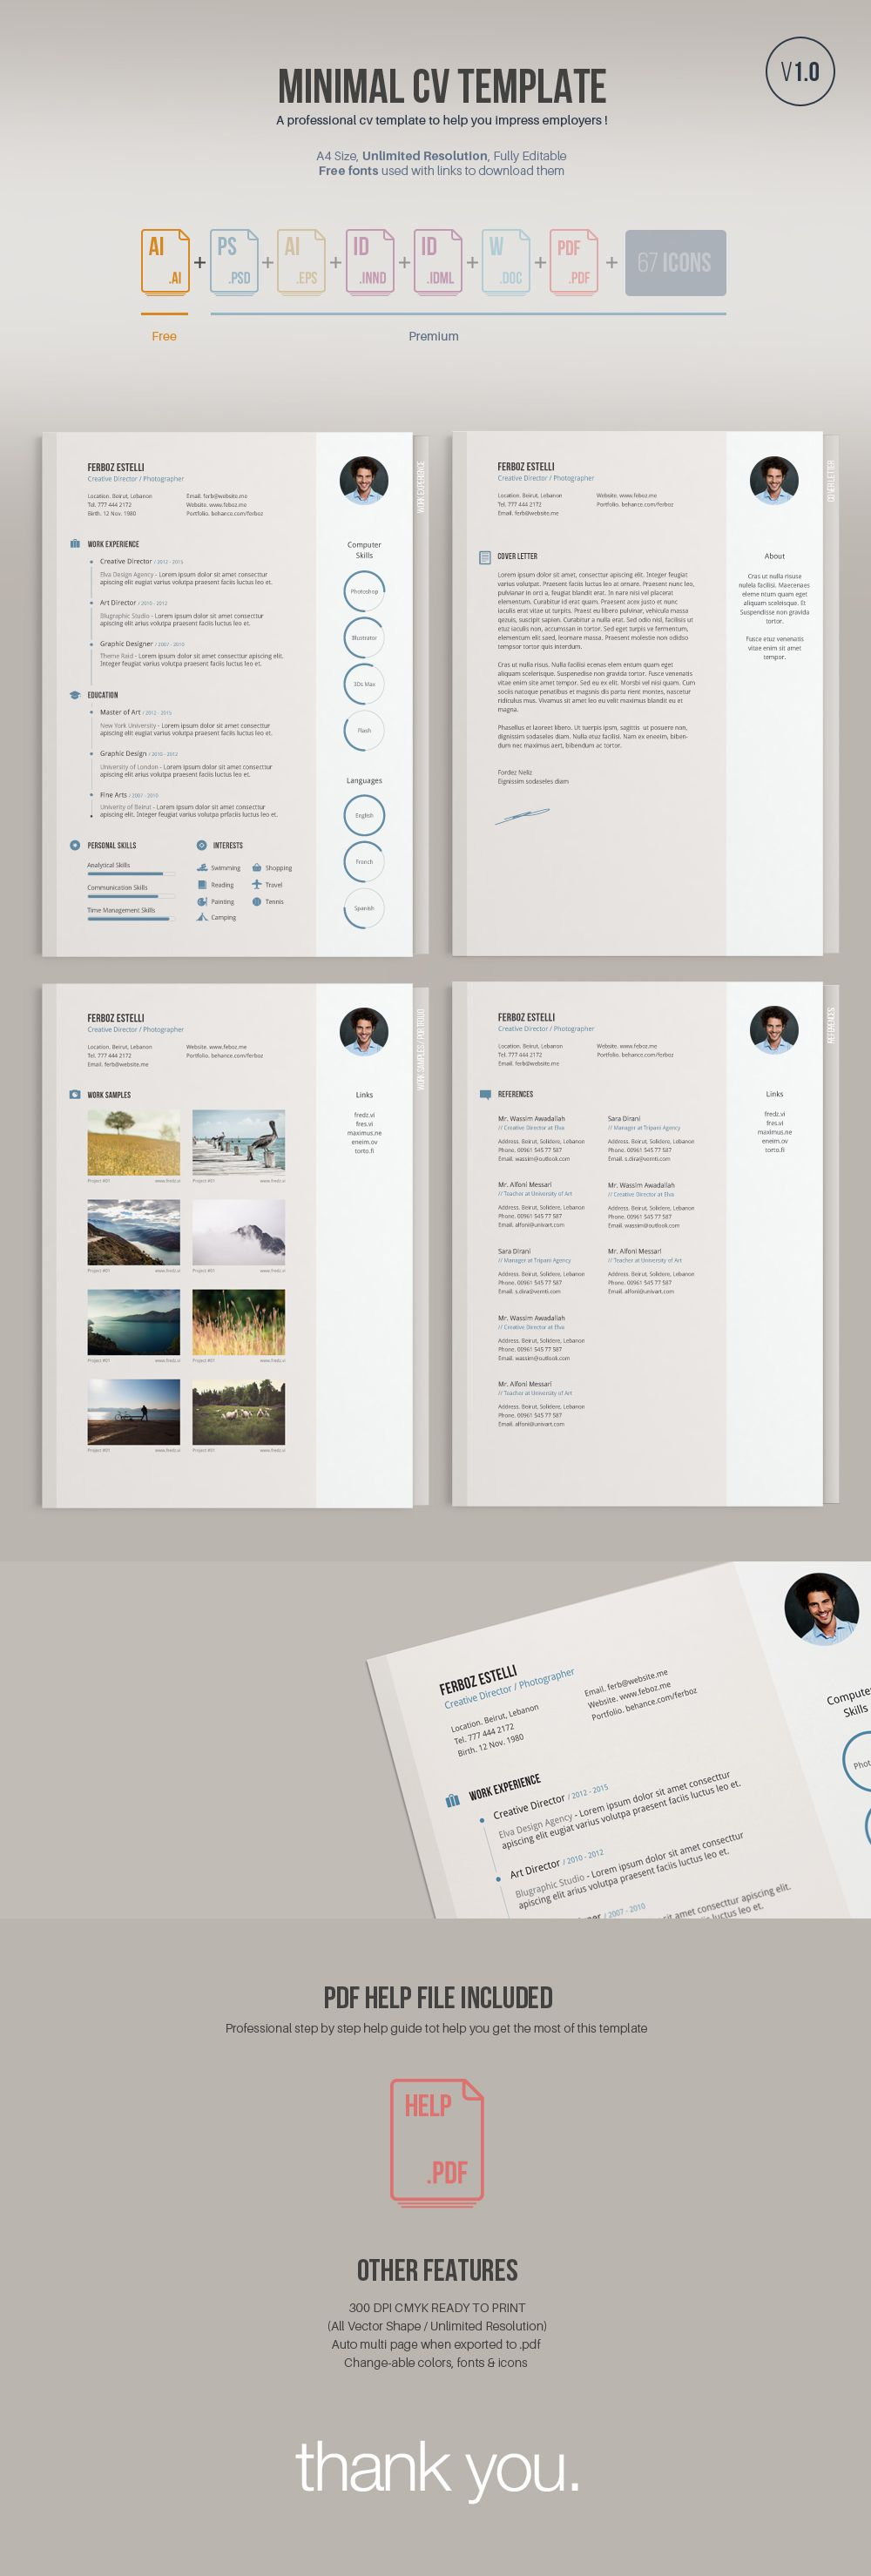 a minimal easy to edit free resume template  free version comes in illustrator vector ai format